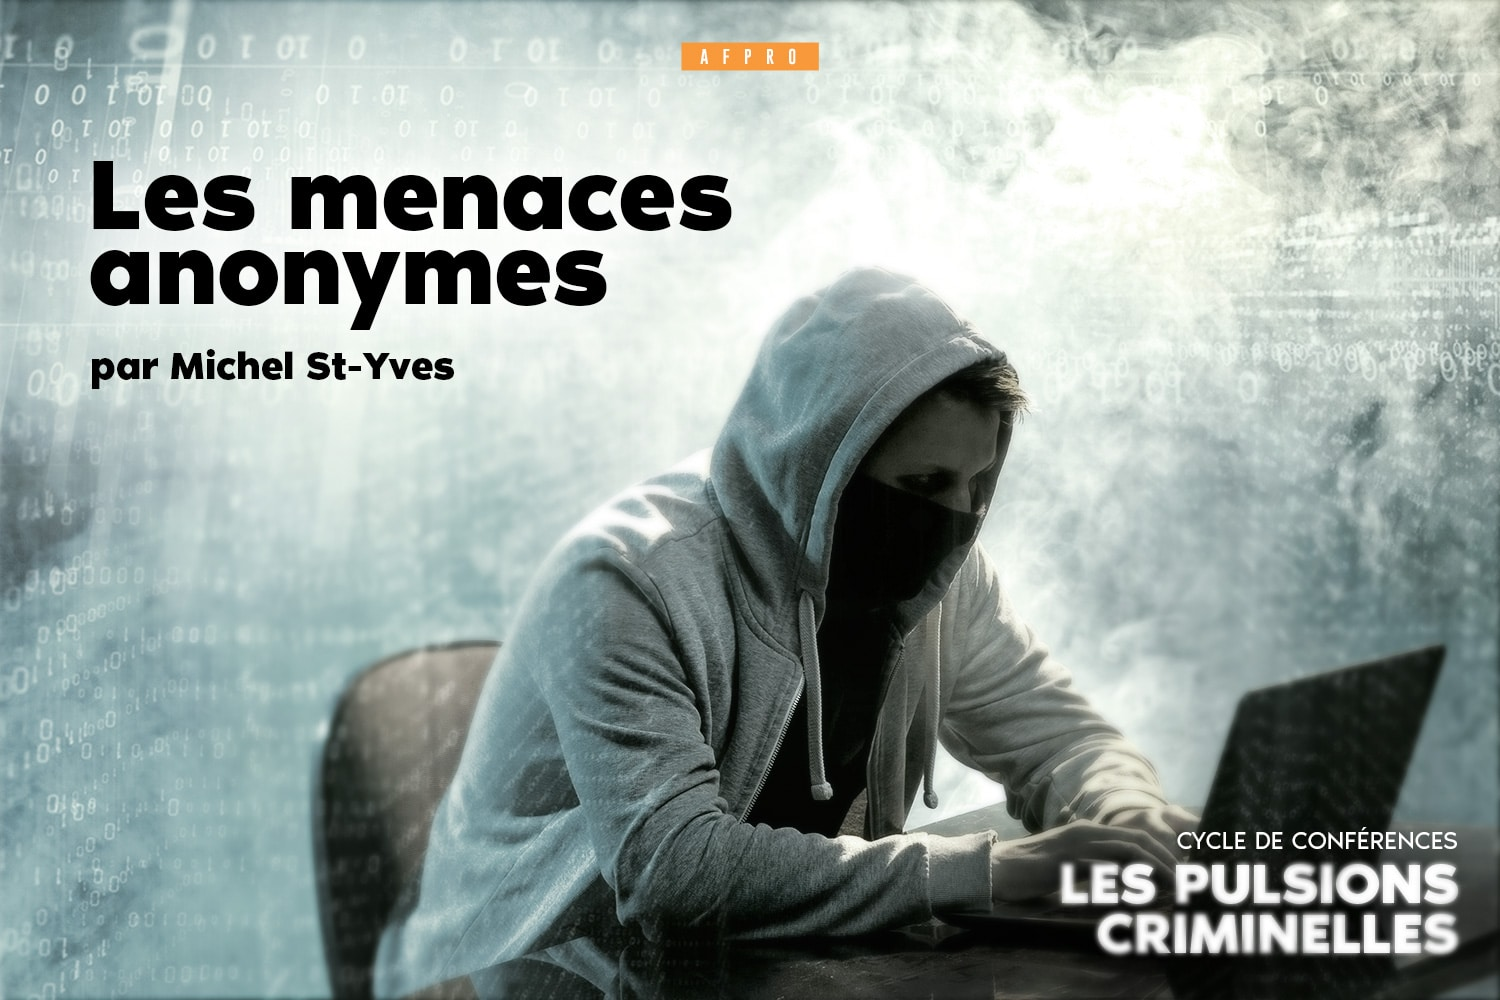 Anonymes Dating